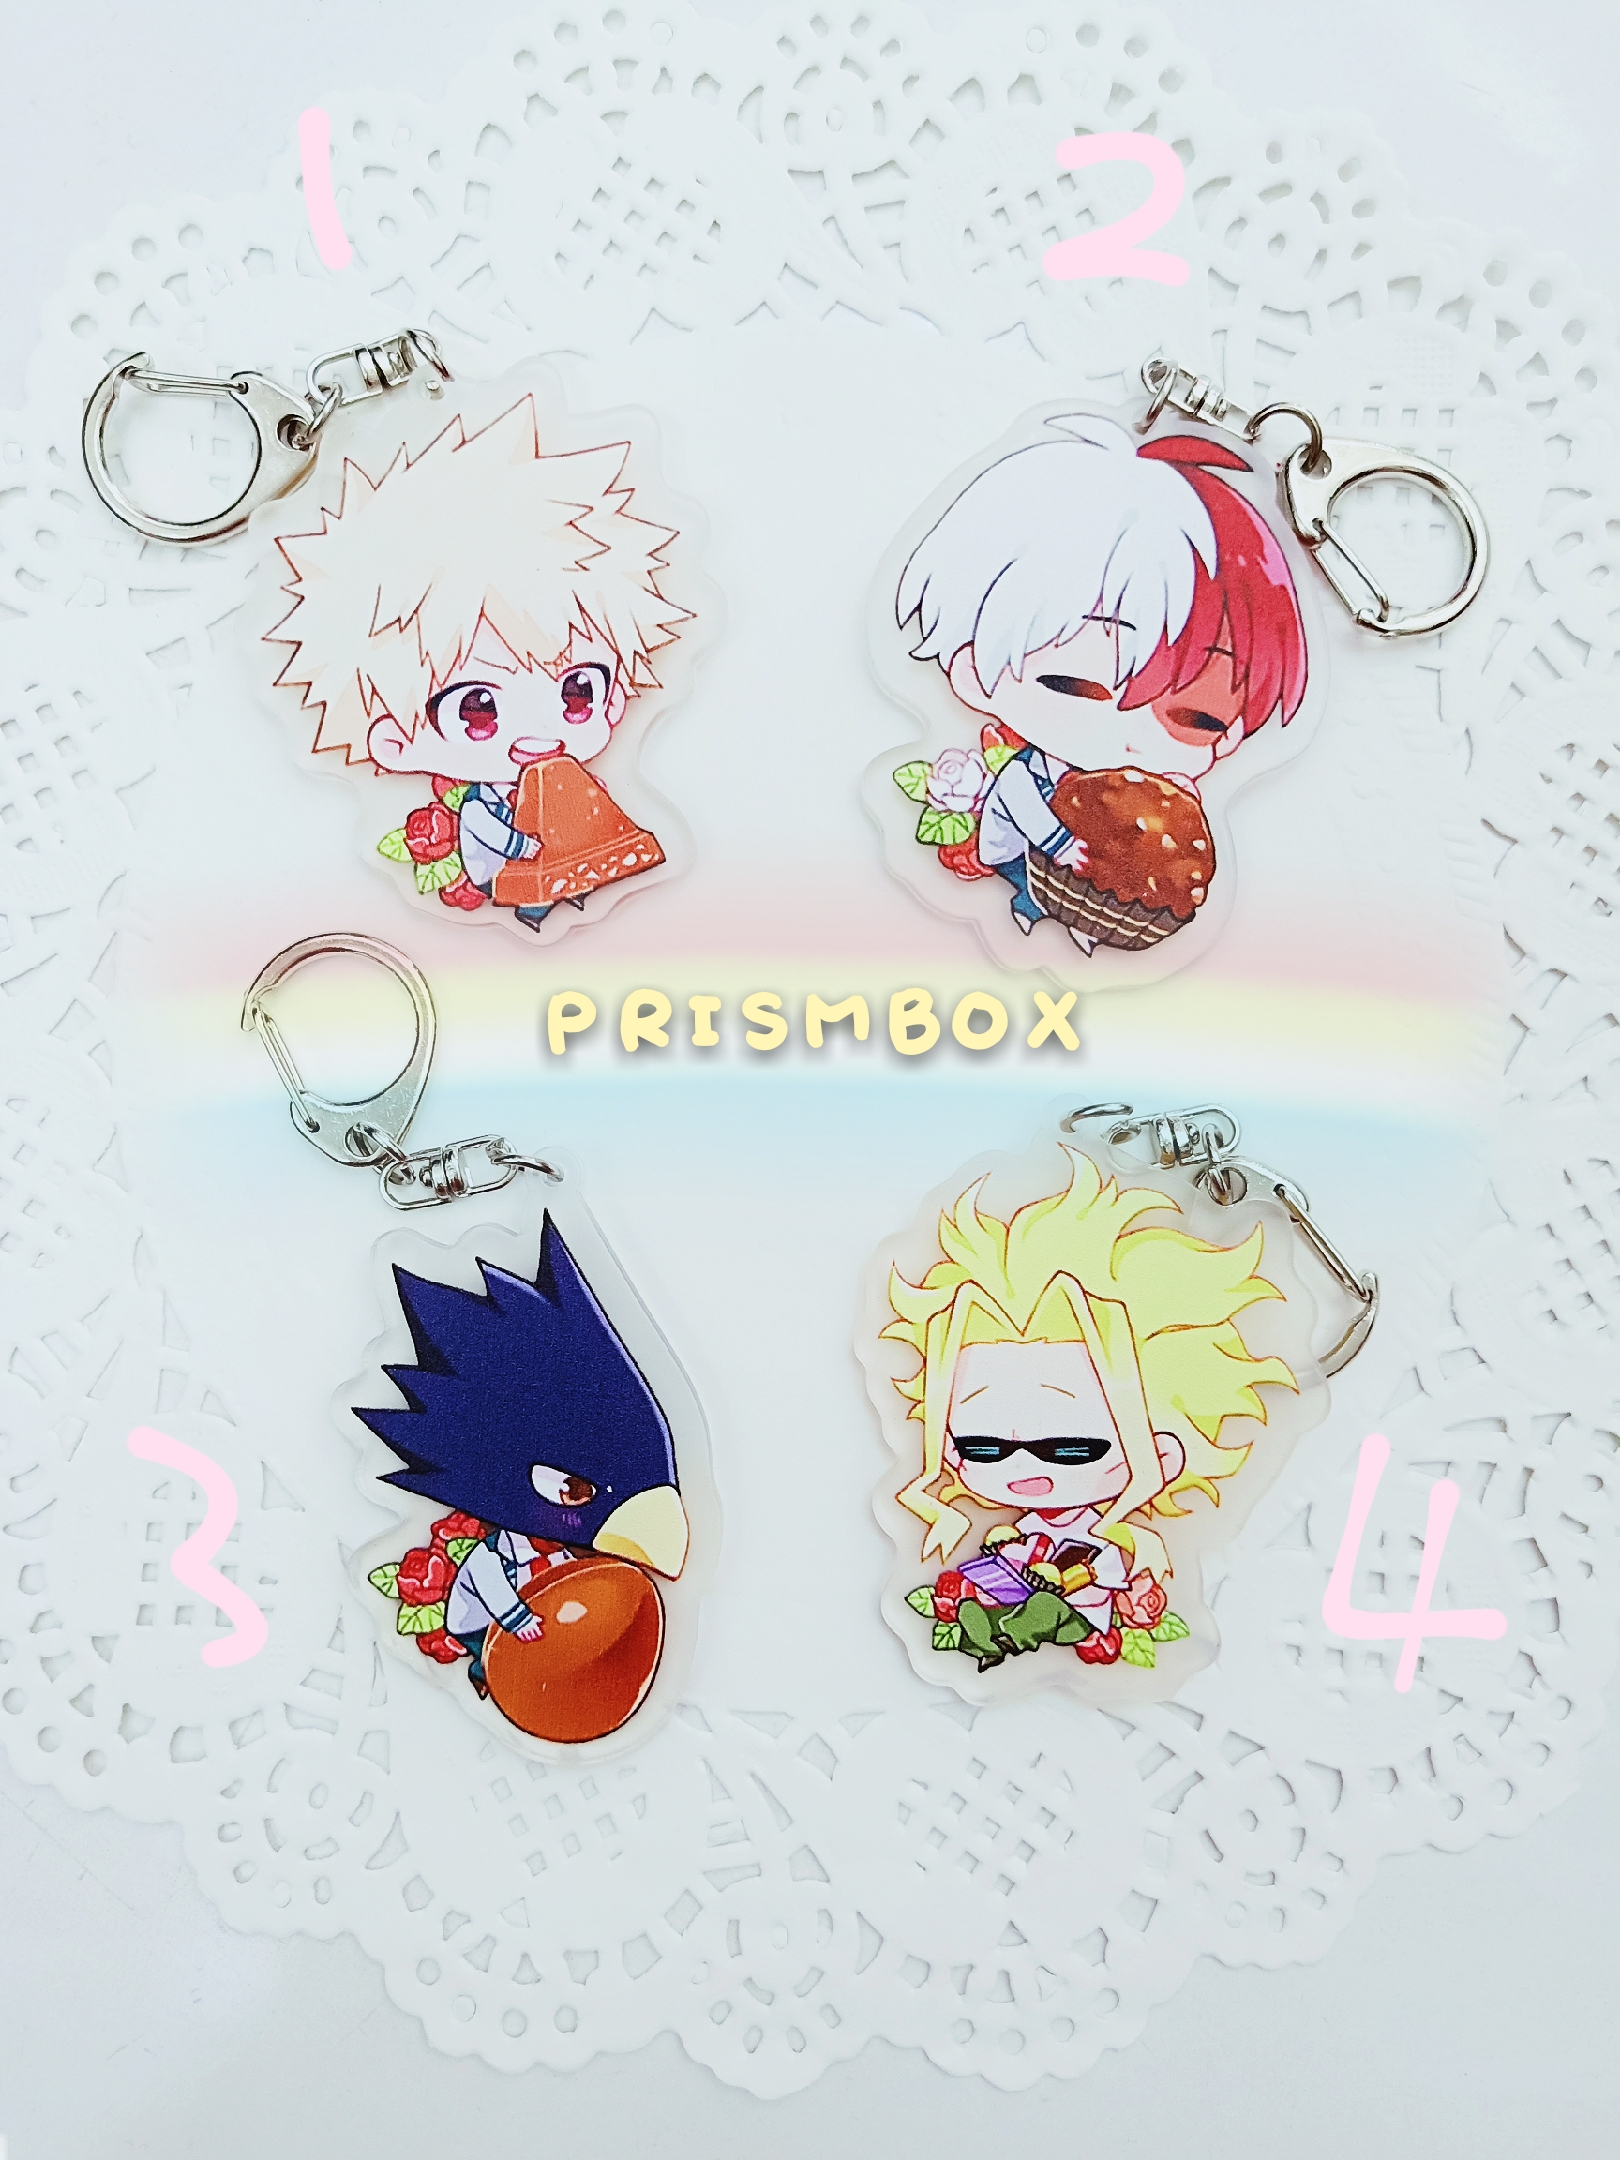 Boku no Hero Academia (BNHA) Chibi Foodie Acrylic Charms sold by prismbox